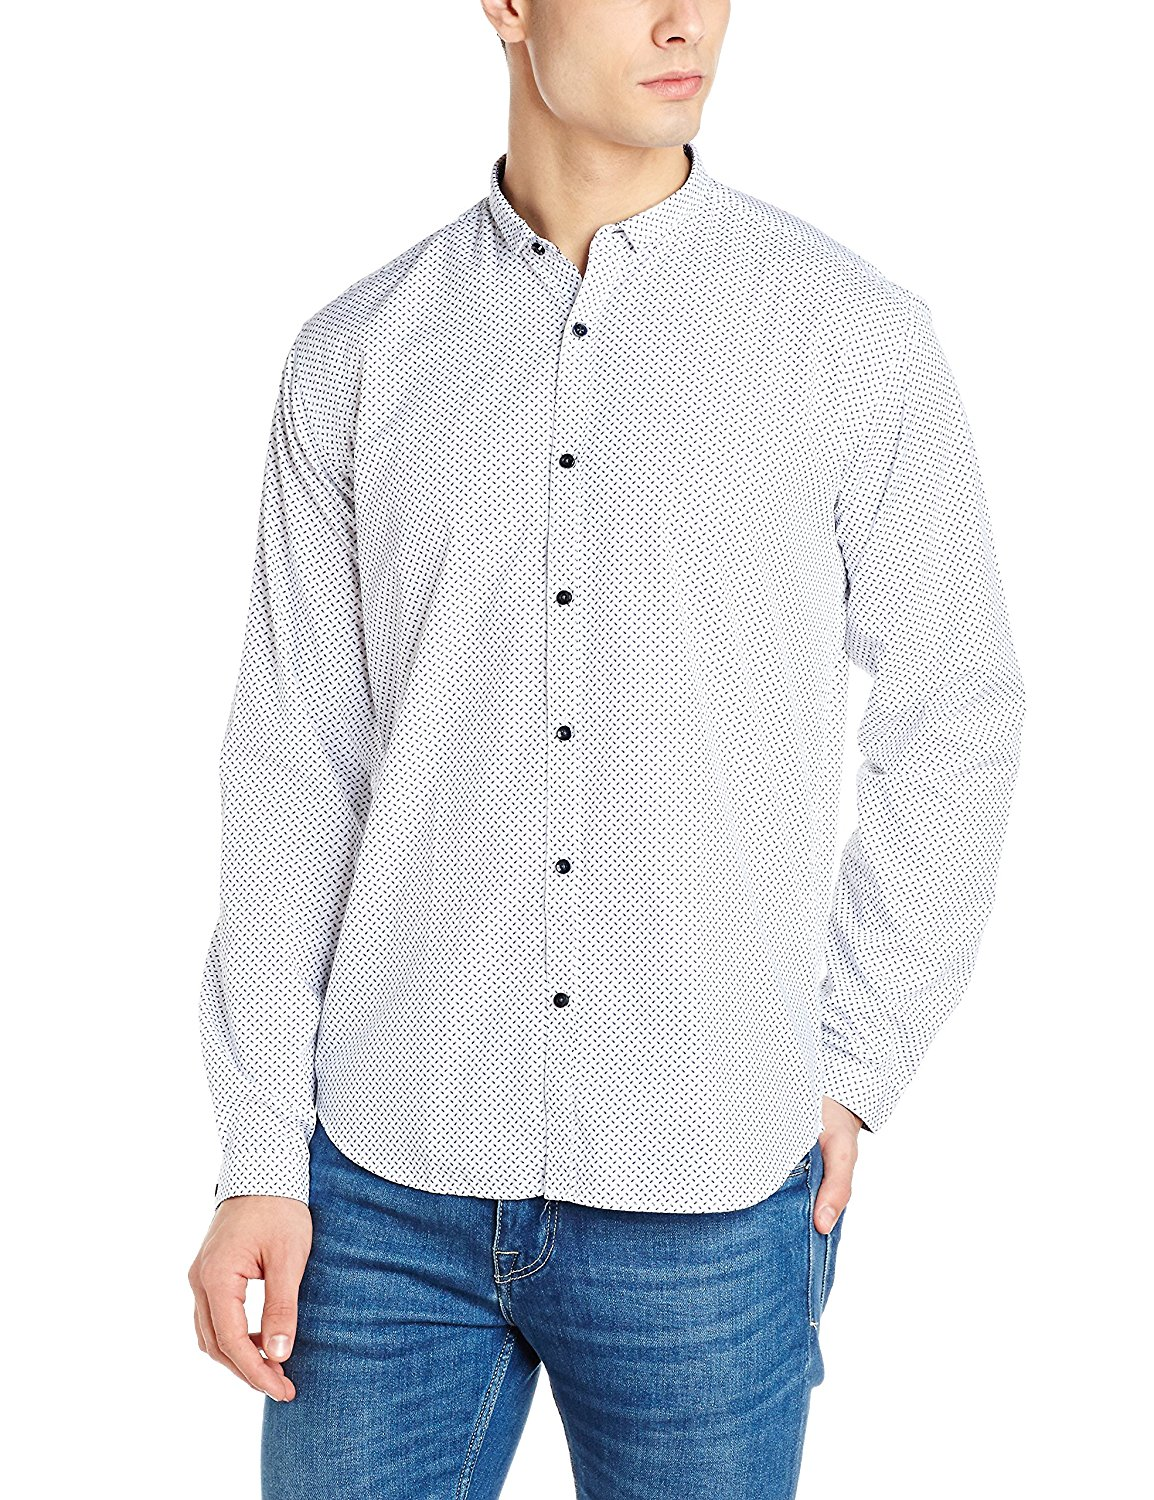 Van Heusen Men's Printed Slim Fit Cotton Casual Shirt at Rs.524 only